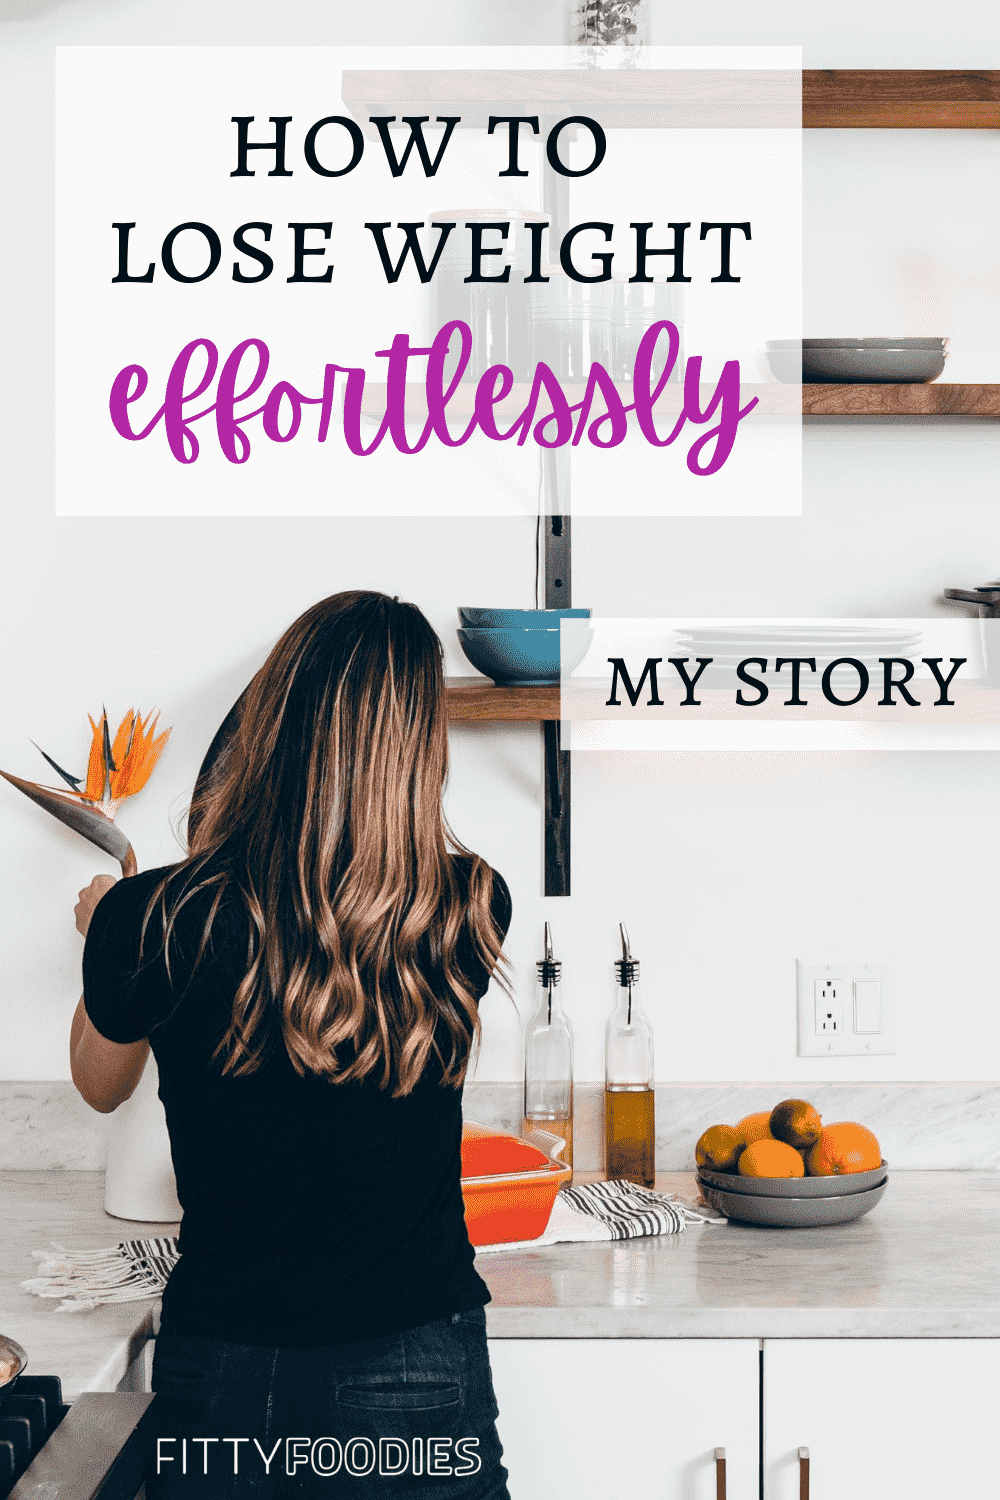 how to lose weight effortlessly image for Pinterest